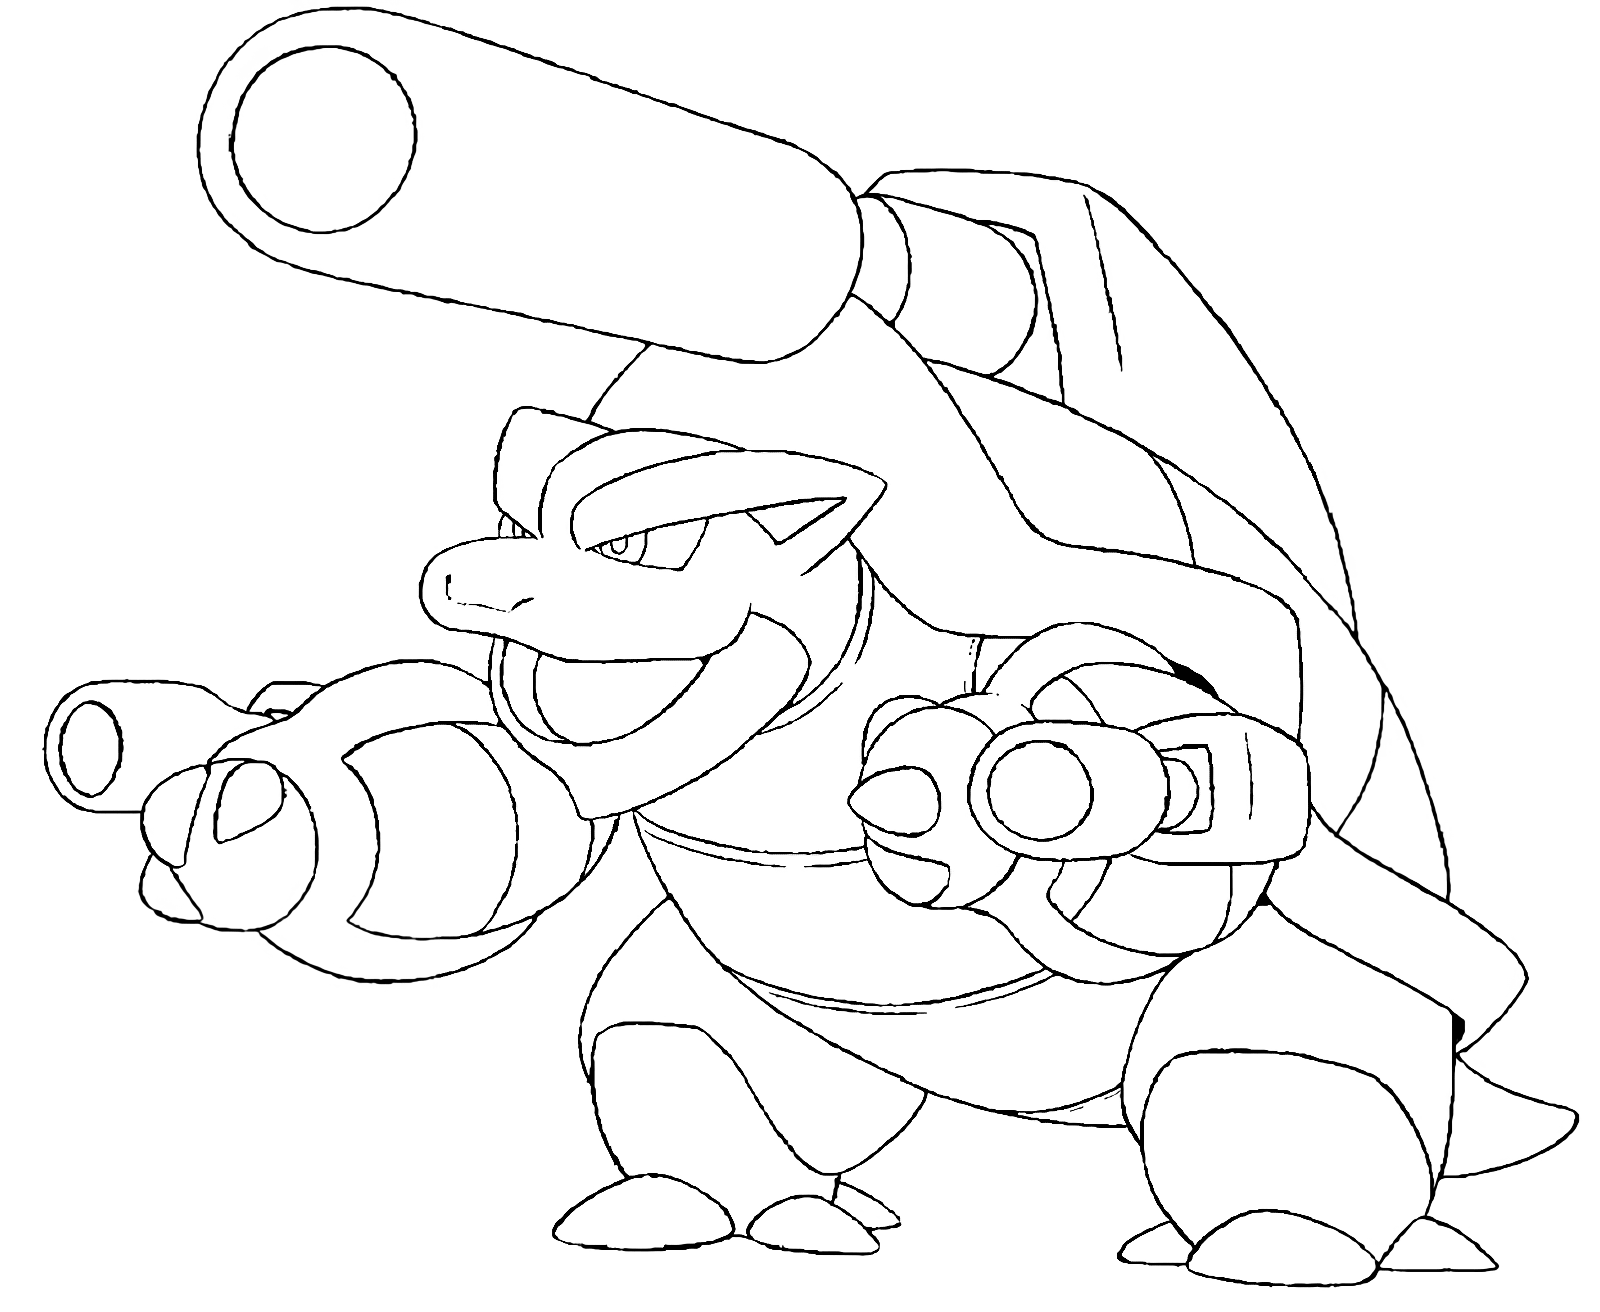 pokemon coloring pages blastoise blastoise drawing at getdrawings free download pokemon coloring pages blastoise